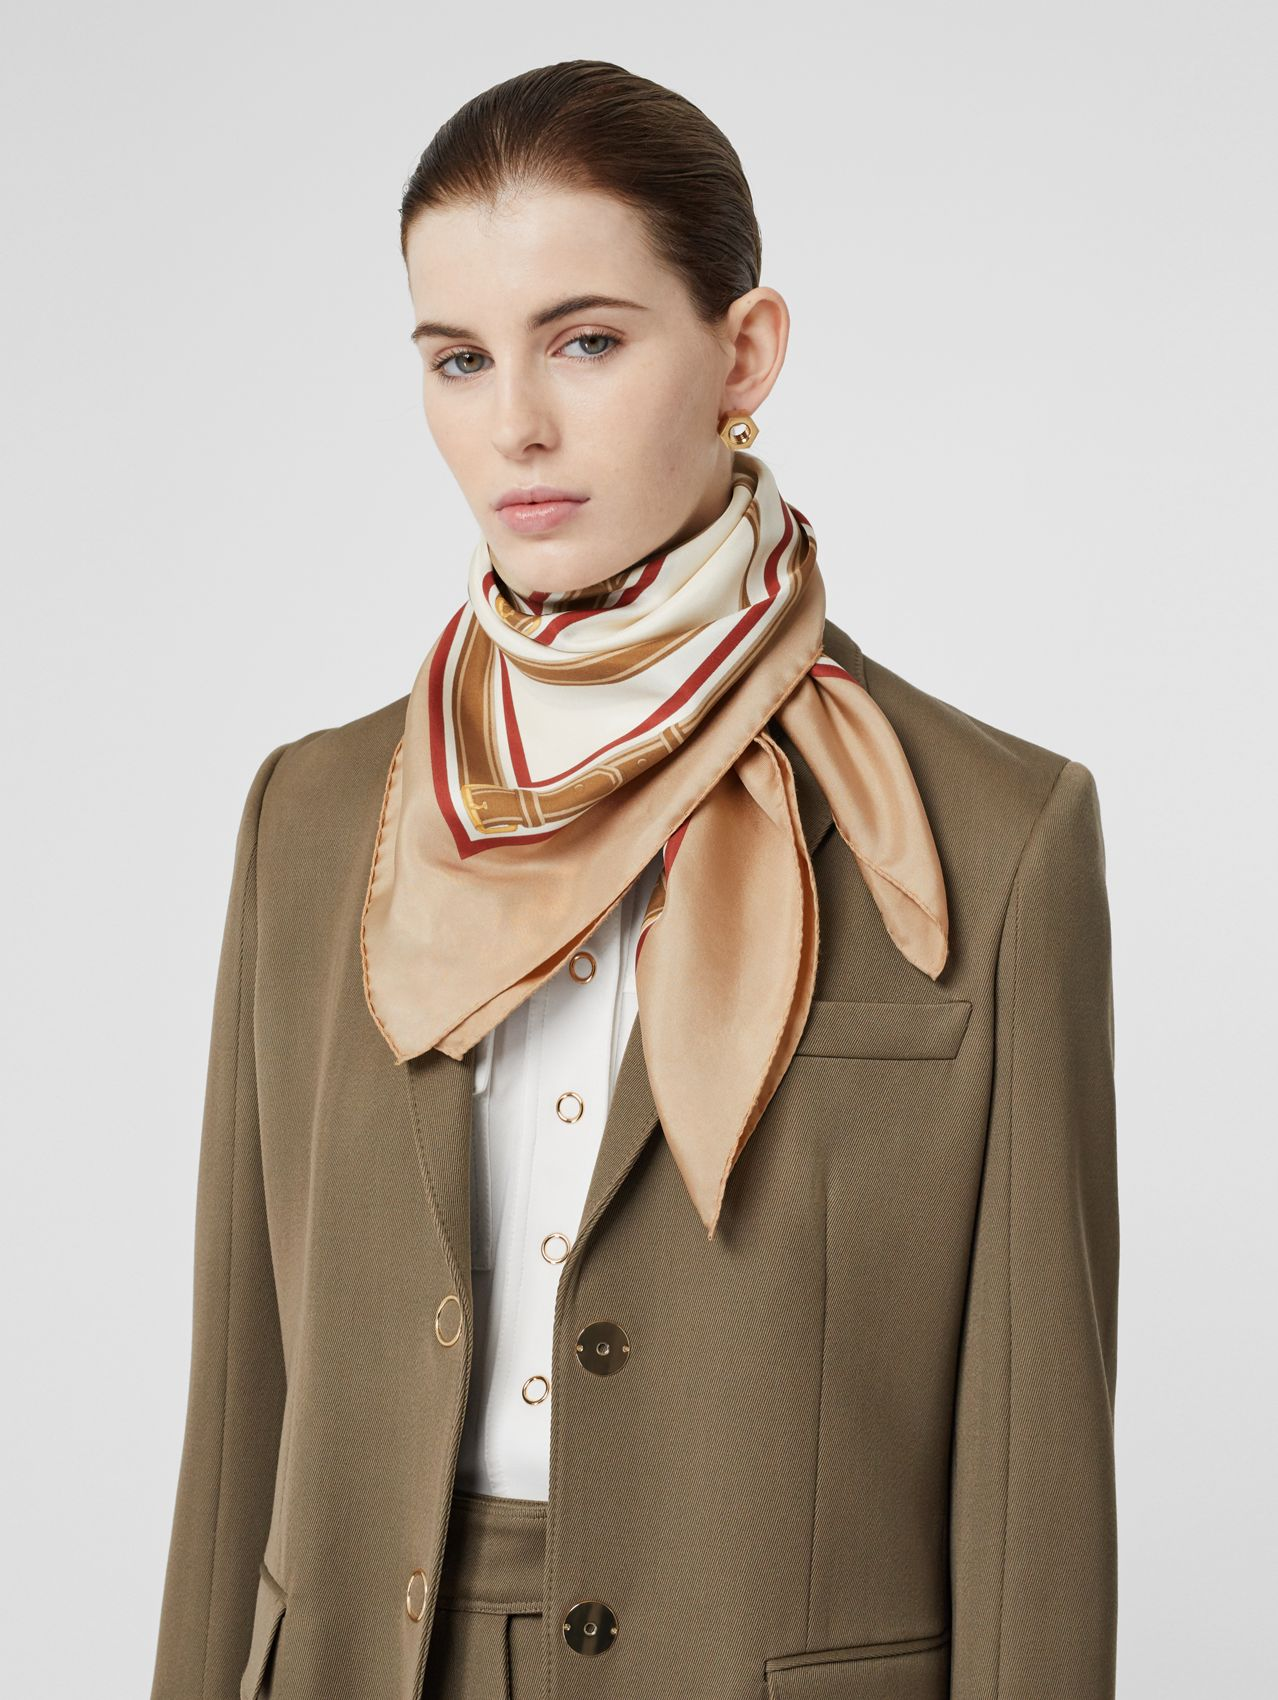 Archive Scarf Print Silk Square Scarf in Pale Camel